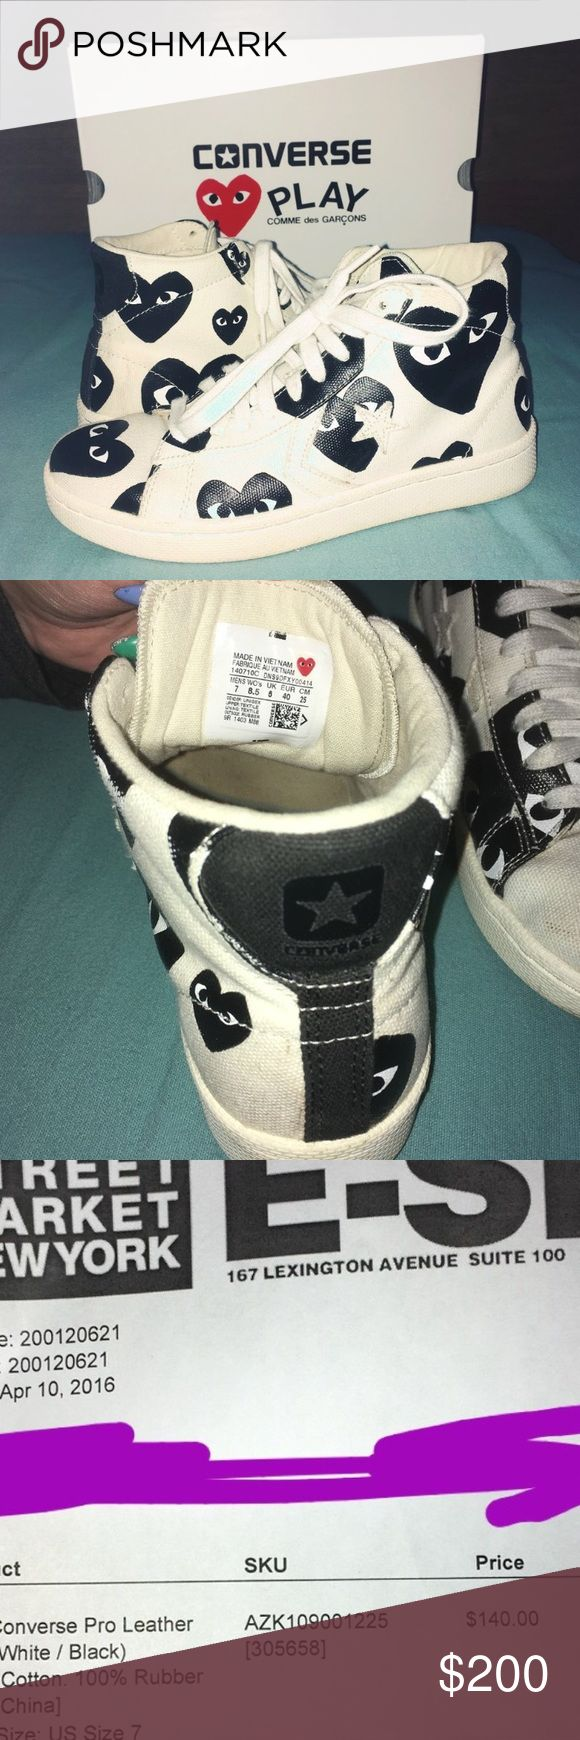 Comme des Garcon shoes still in good condition worn a couple times,no wear and tear no scuff marks,comes with box and receipt. Comme des Garcons Shoes Sneakers